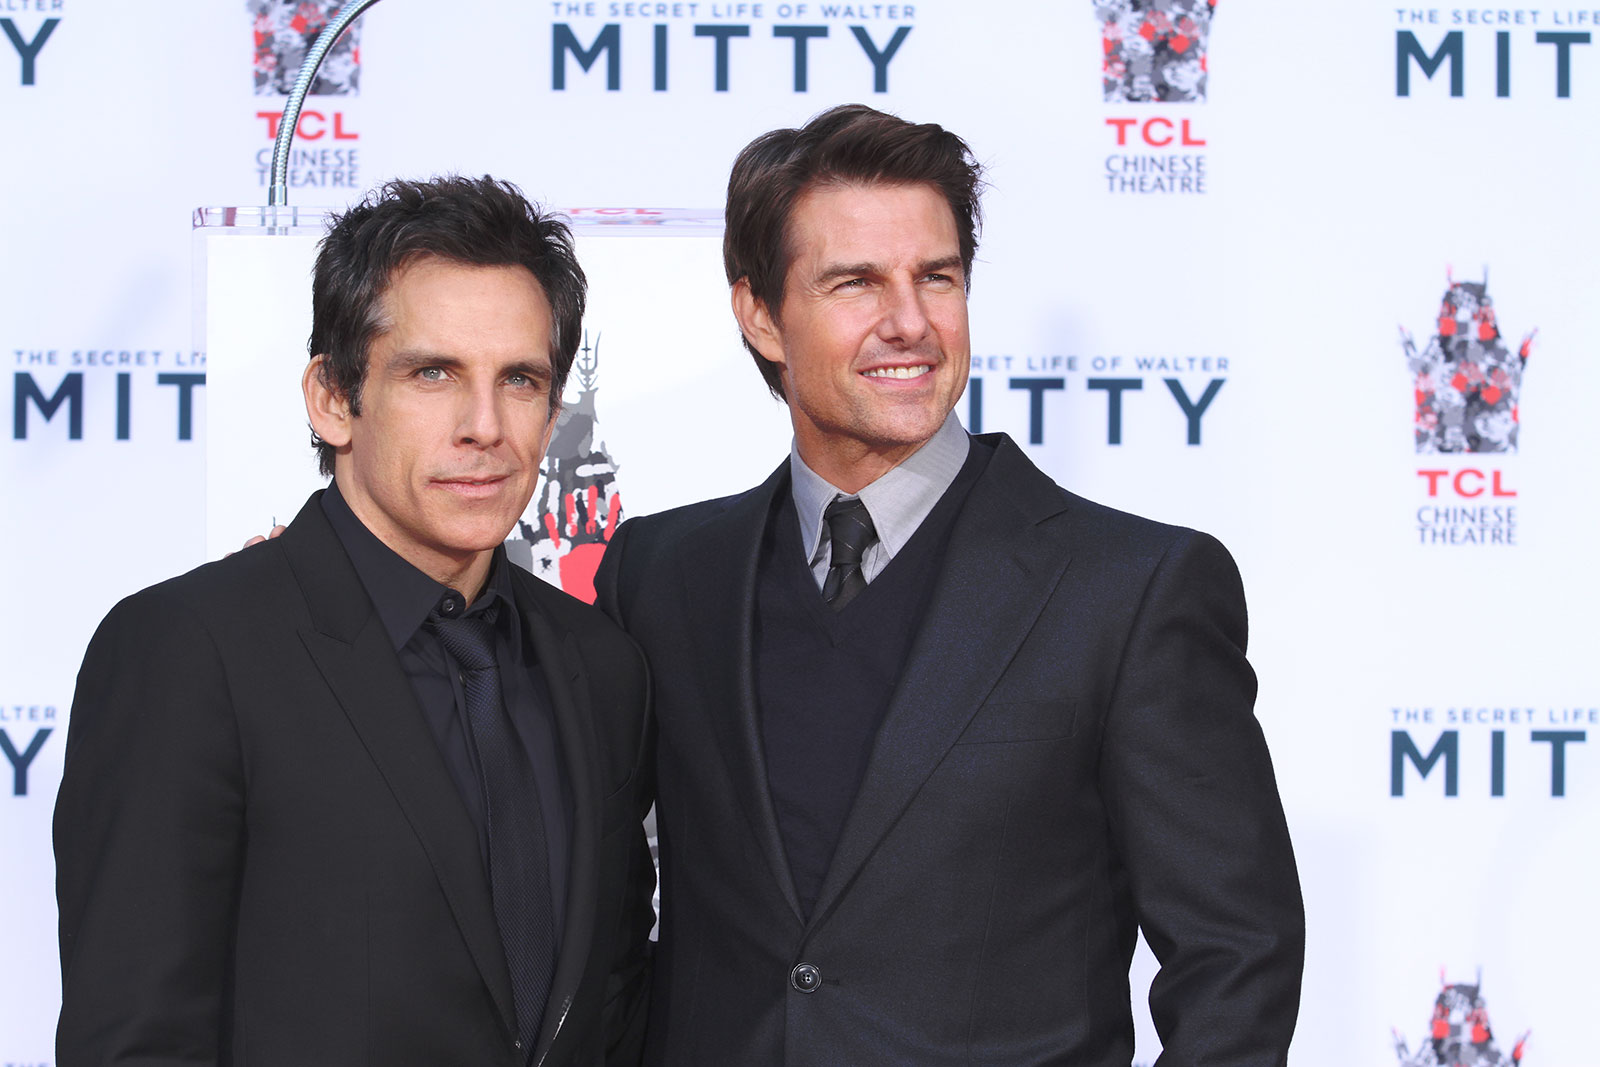 foto de tom cruise la vida secreta de walter mitty couverture magazine ben stiller tom. Black Bedroom Furniture Sets. Home Design Ideas